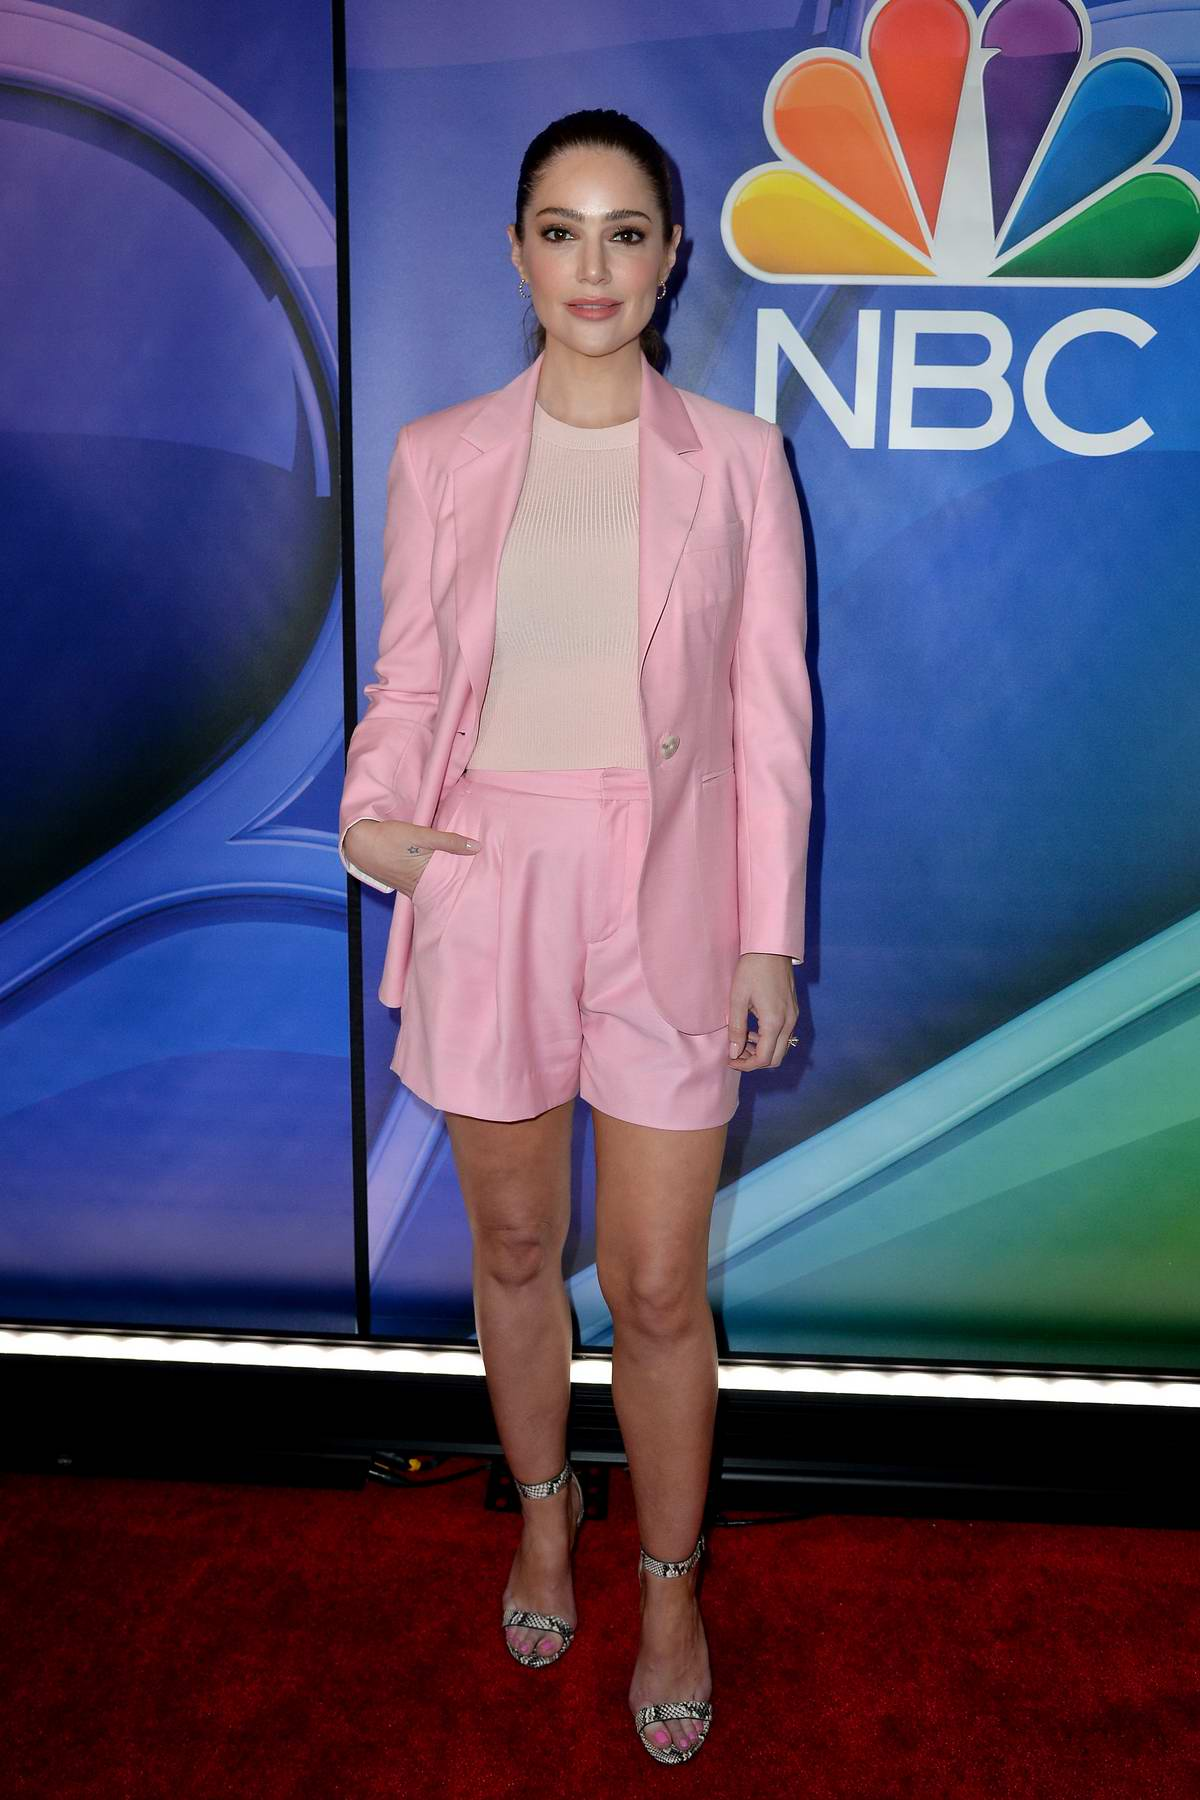 Janet Montgomery attends the NBCUniversal Upfront Presentation at Four Seasons Hotel in New York City